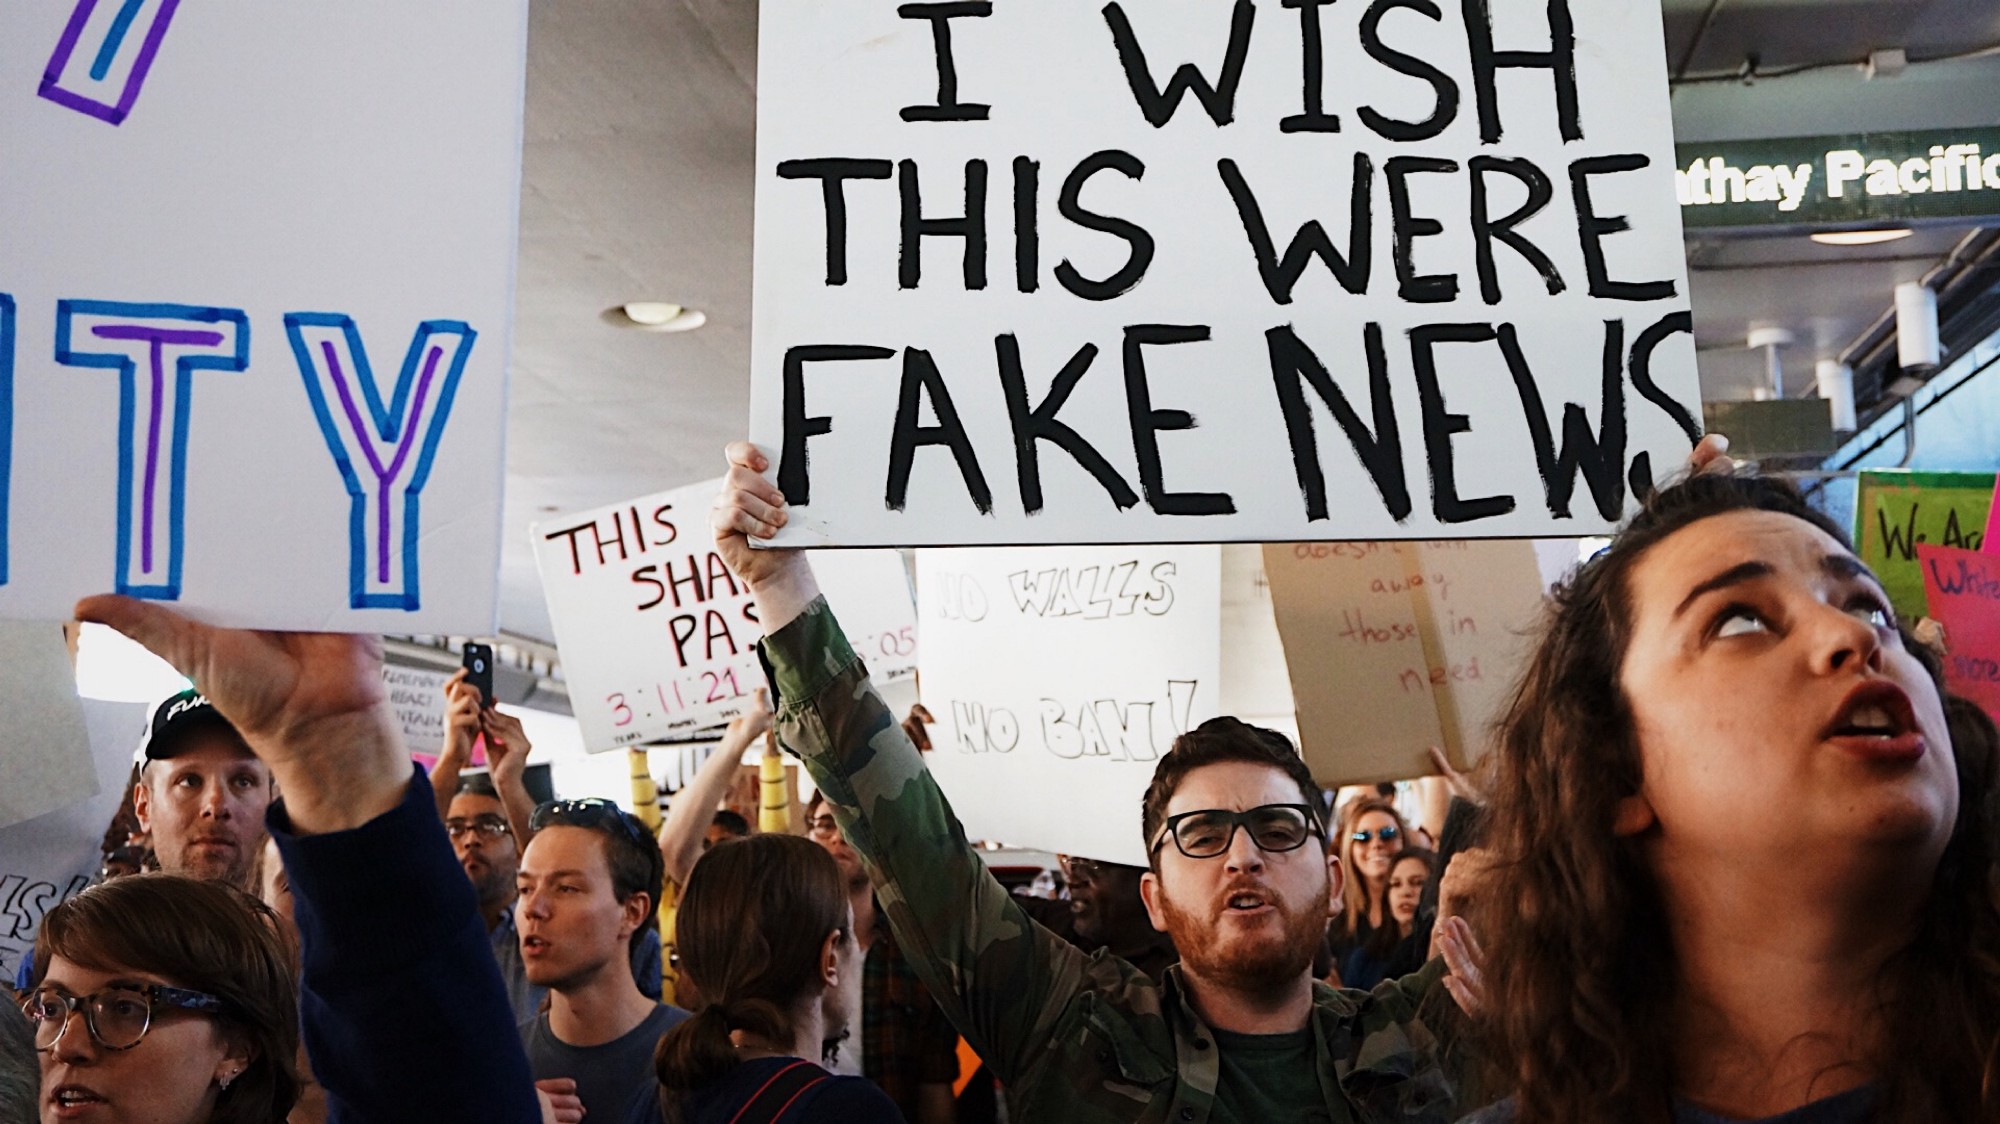 What do we mean by fake news, and how can we combat it?